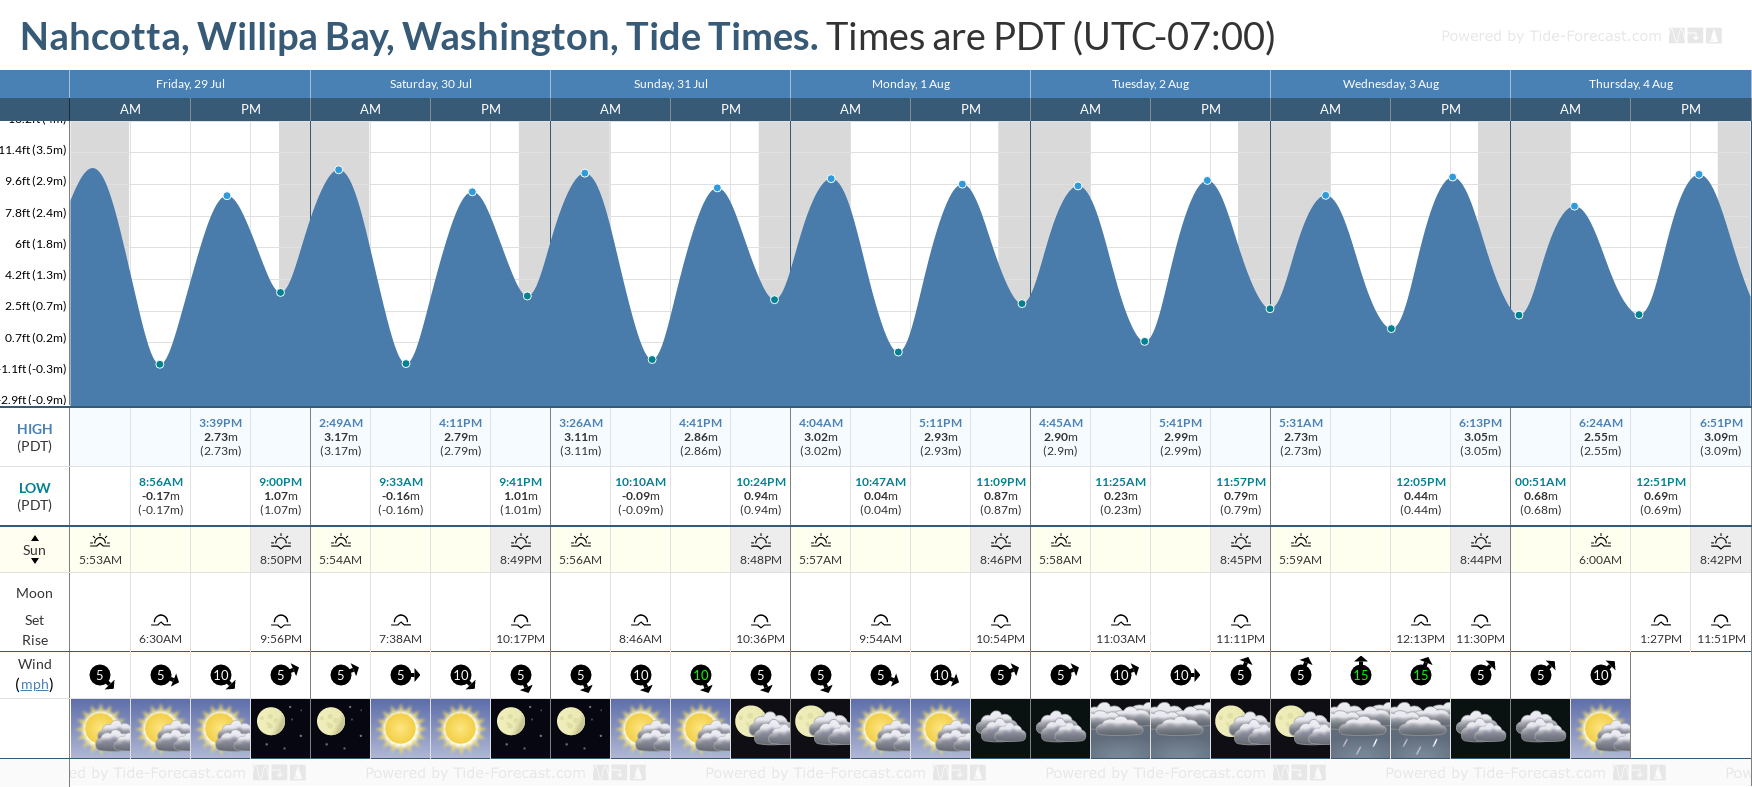 Nahcotta, Willipa Bay, Washington Tide Chart including high and low tide tide times for the next 7 days